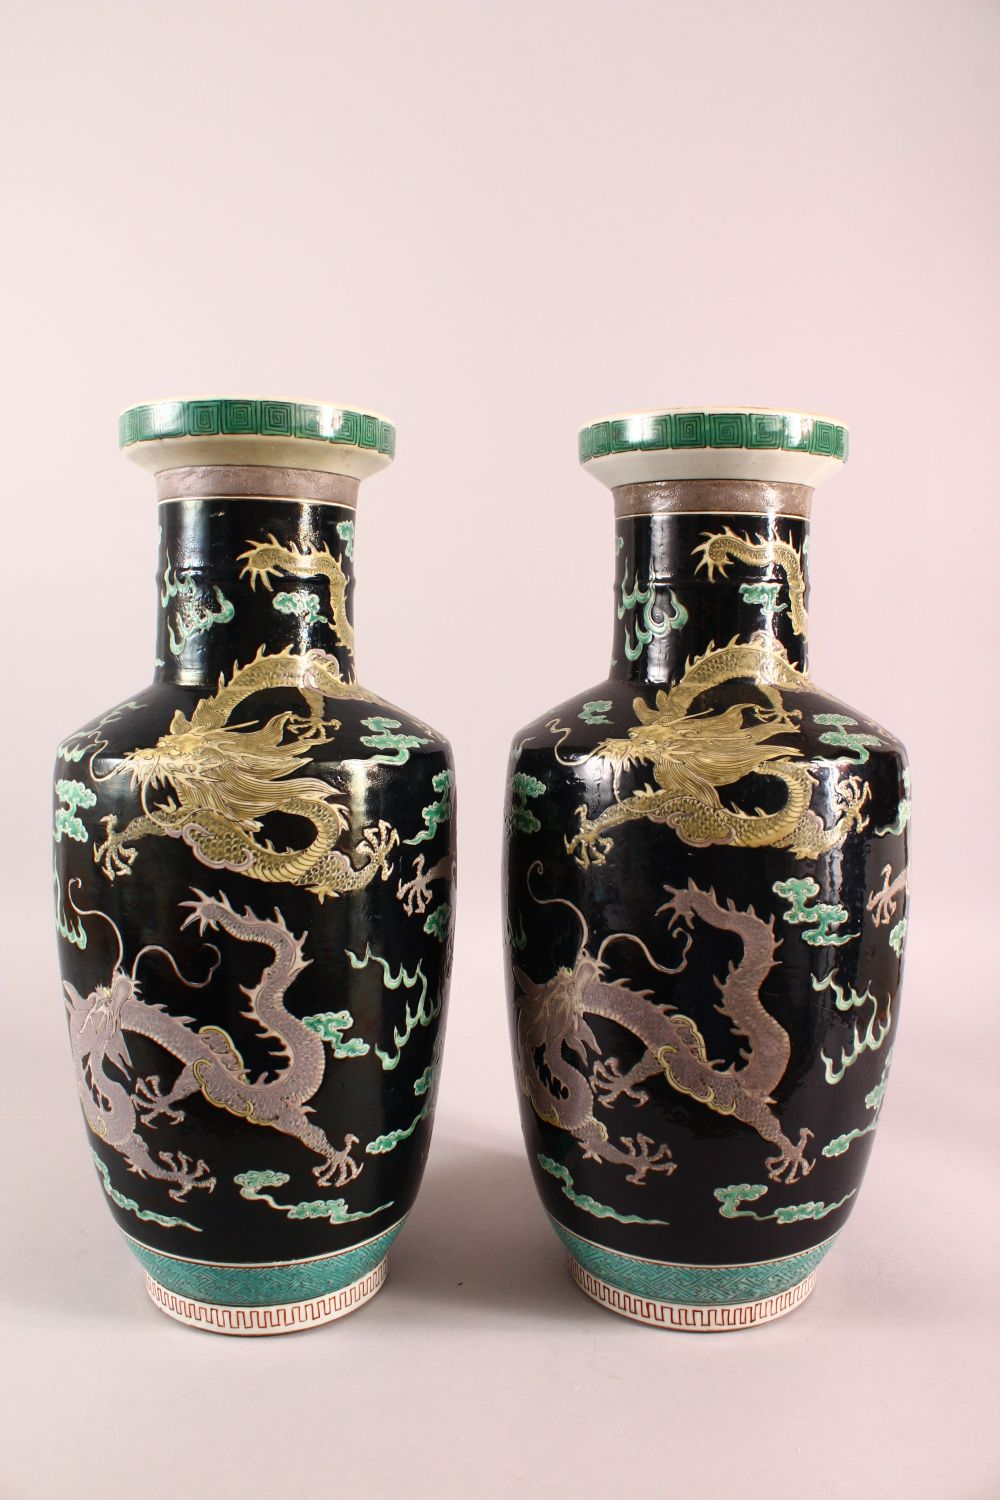 A LARGE PAIR OF CHINESE FAMILLE NOIR PORCELAIN DRAGON VASES, each vase with a black ground depicting - Image 5 of 13